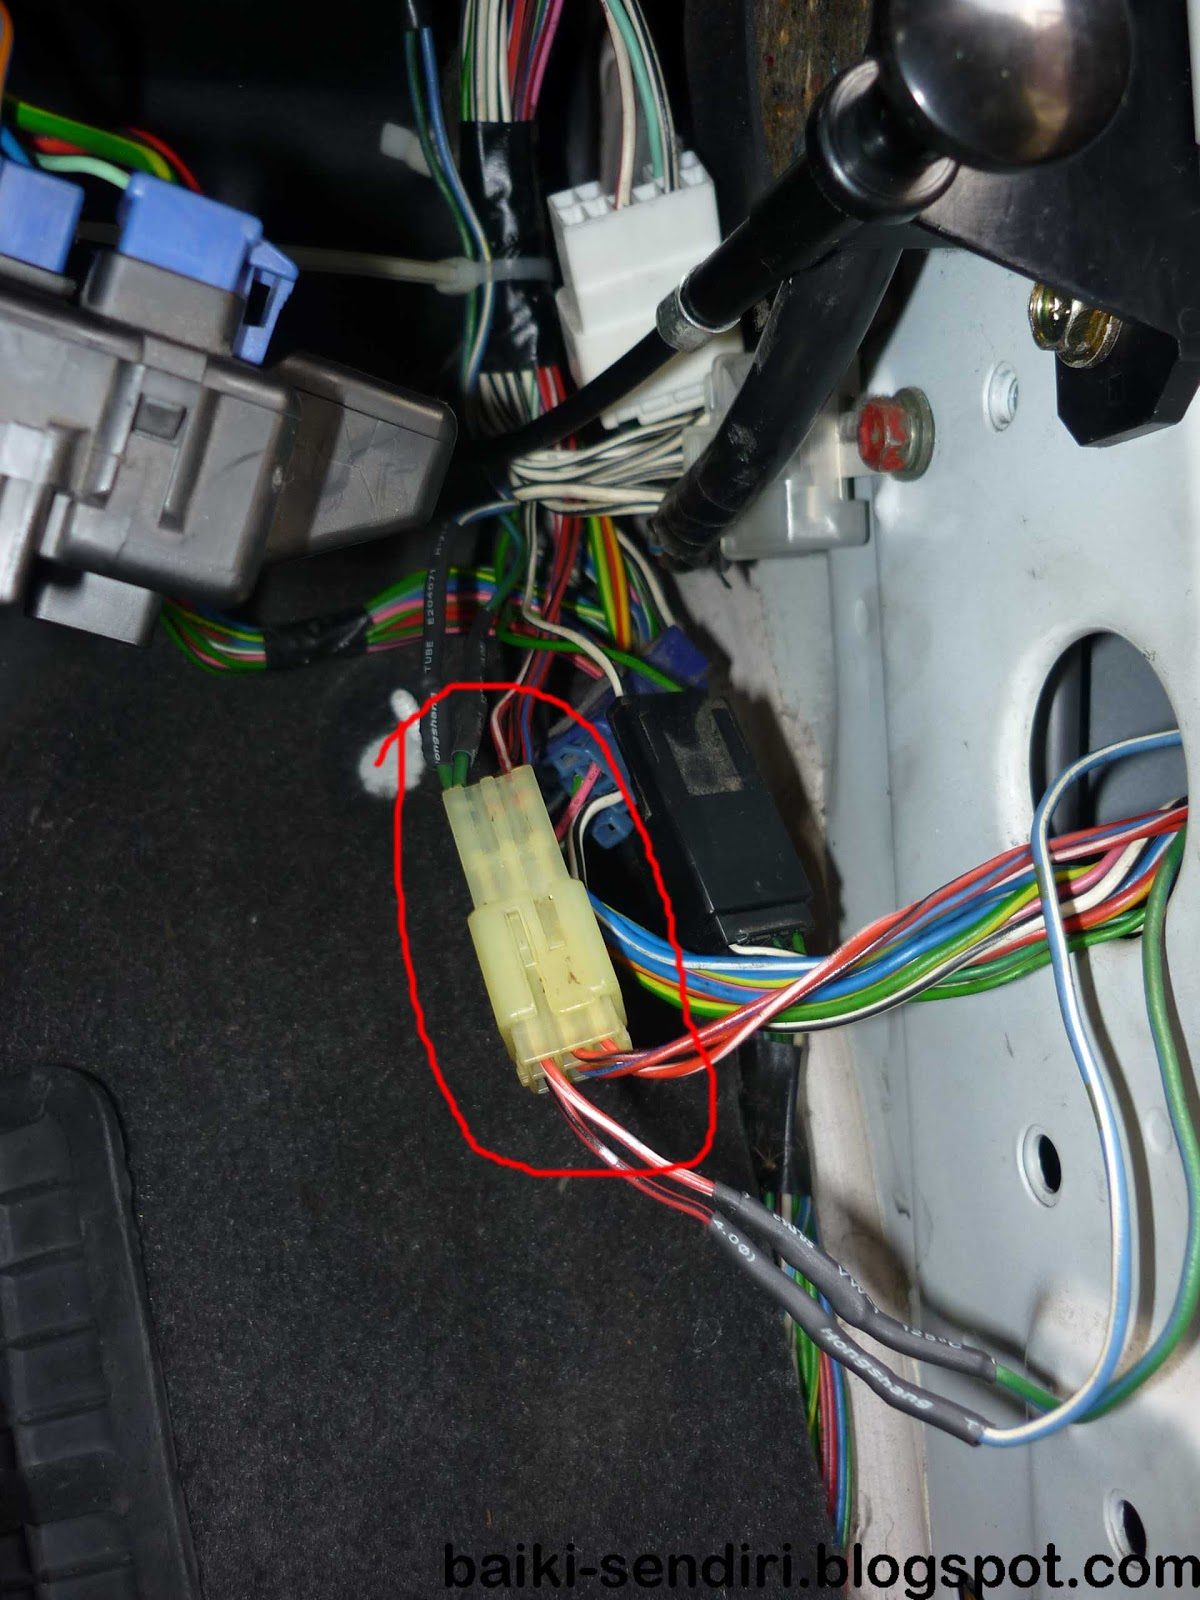 Perodua Kancil Wiring Diagram 29 Images Daihatsu Kembara Diy Fix On Your Own L7 Kelisa Autoflip